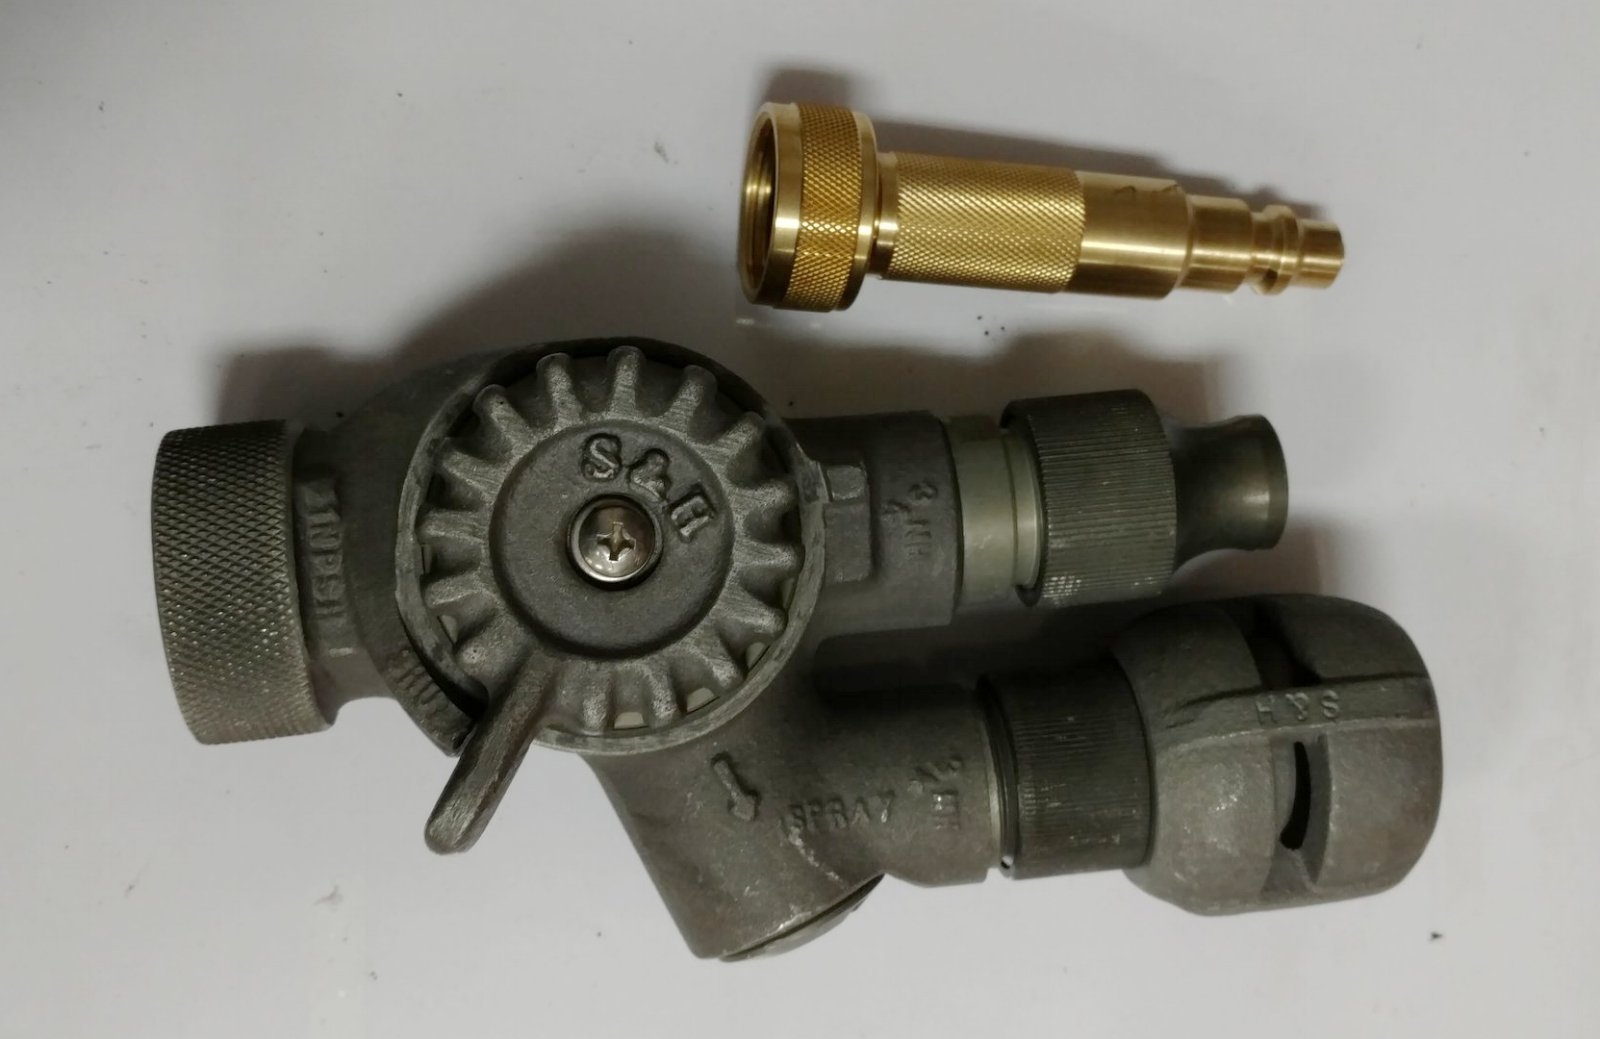 The forester twin tip nozzle can be fitted with the Dual Purpose Nozzle for tripple the use.